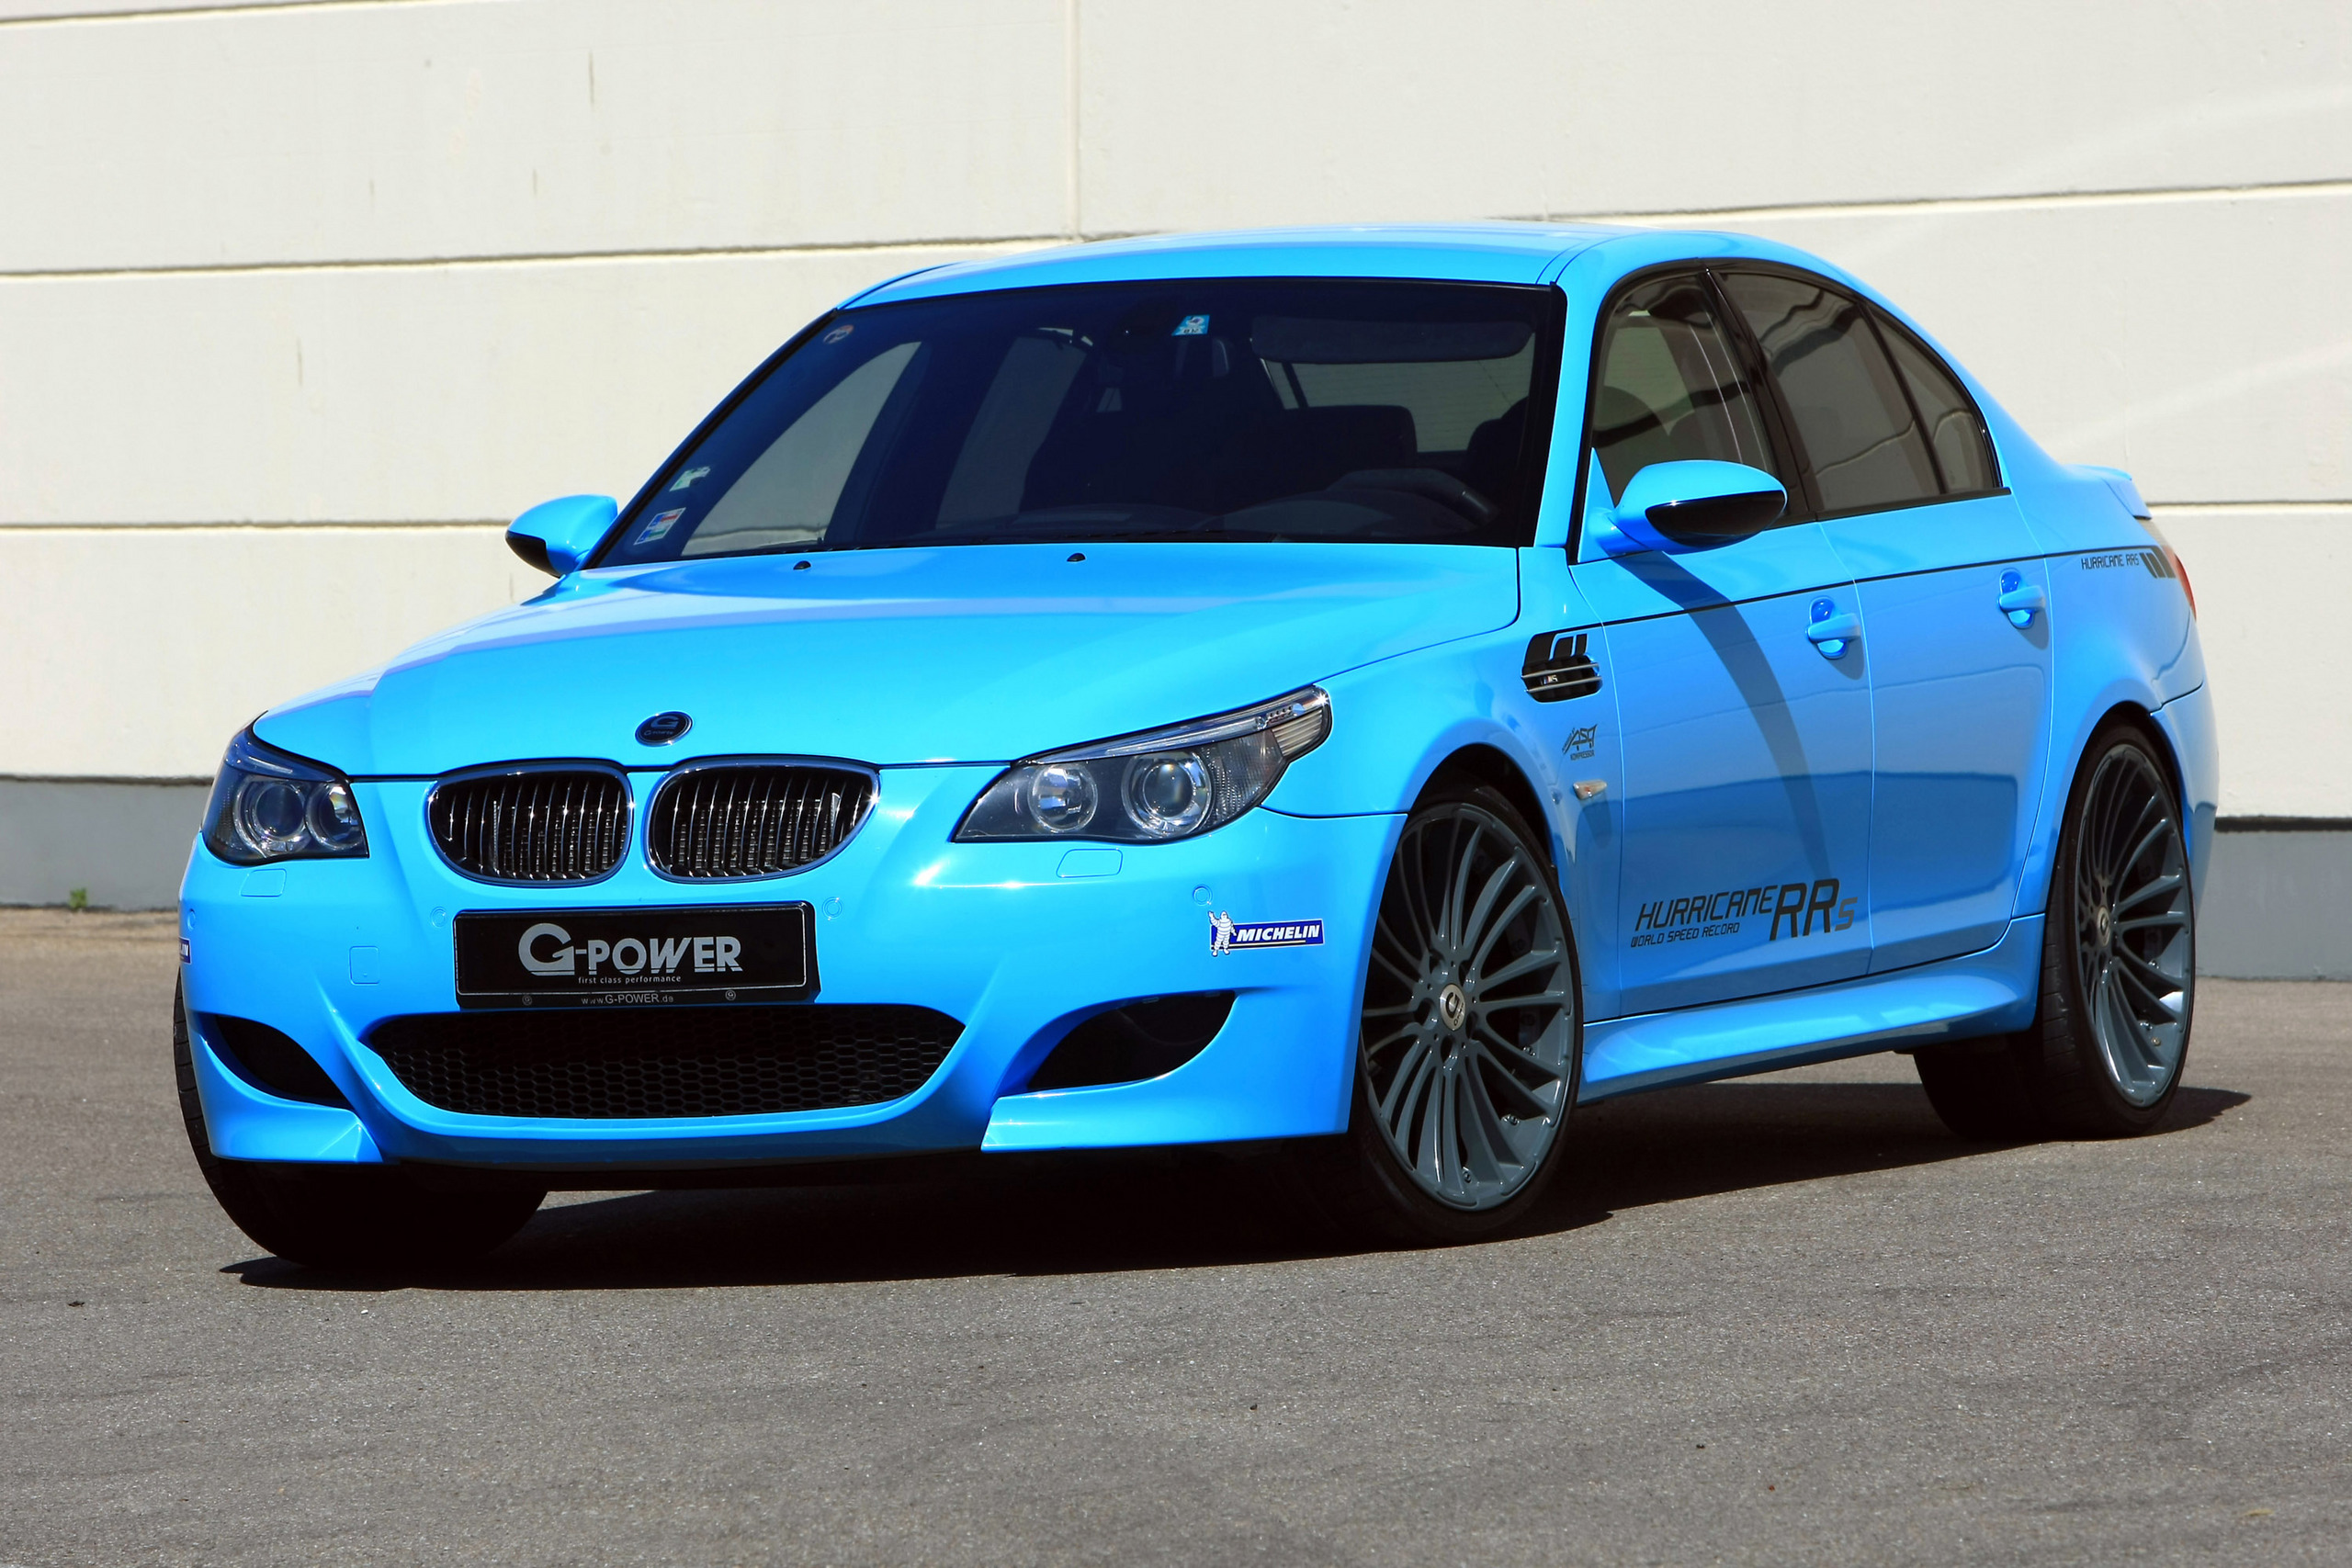 2015 Bmw X1 >> BMW M5 HURRICANE RRS BY G-POWER - BMW Photo (30949836) - Fanpop